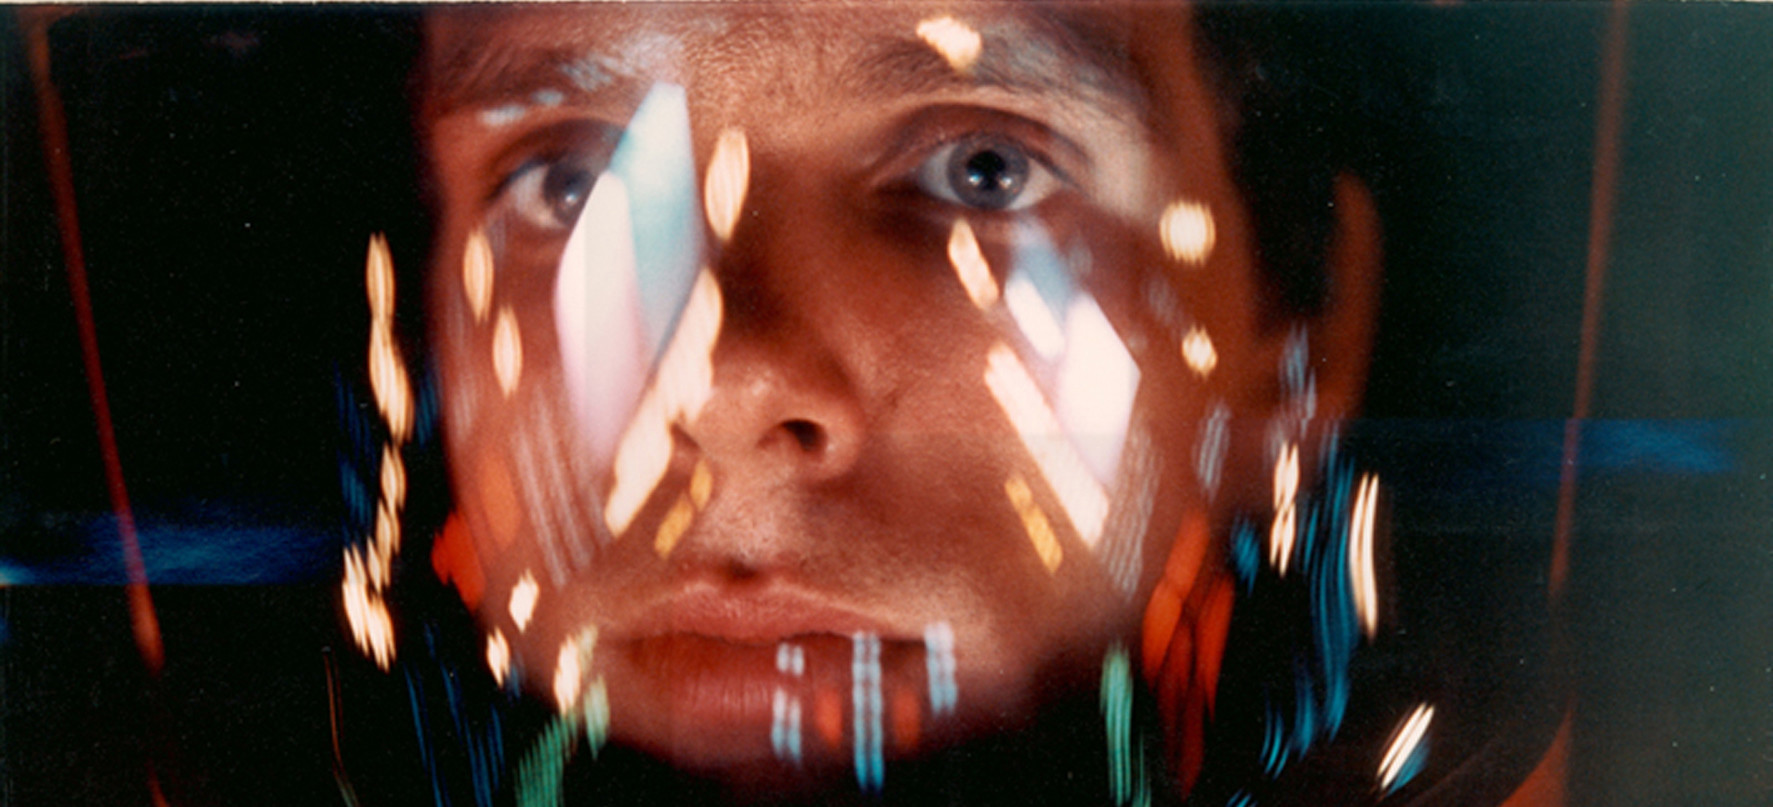 American Cinematheque debuts new 70-mm print of '2001: A Space Odyssey'